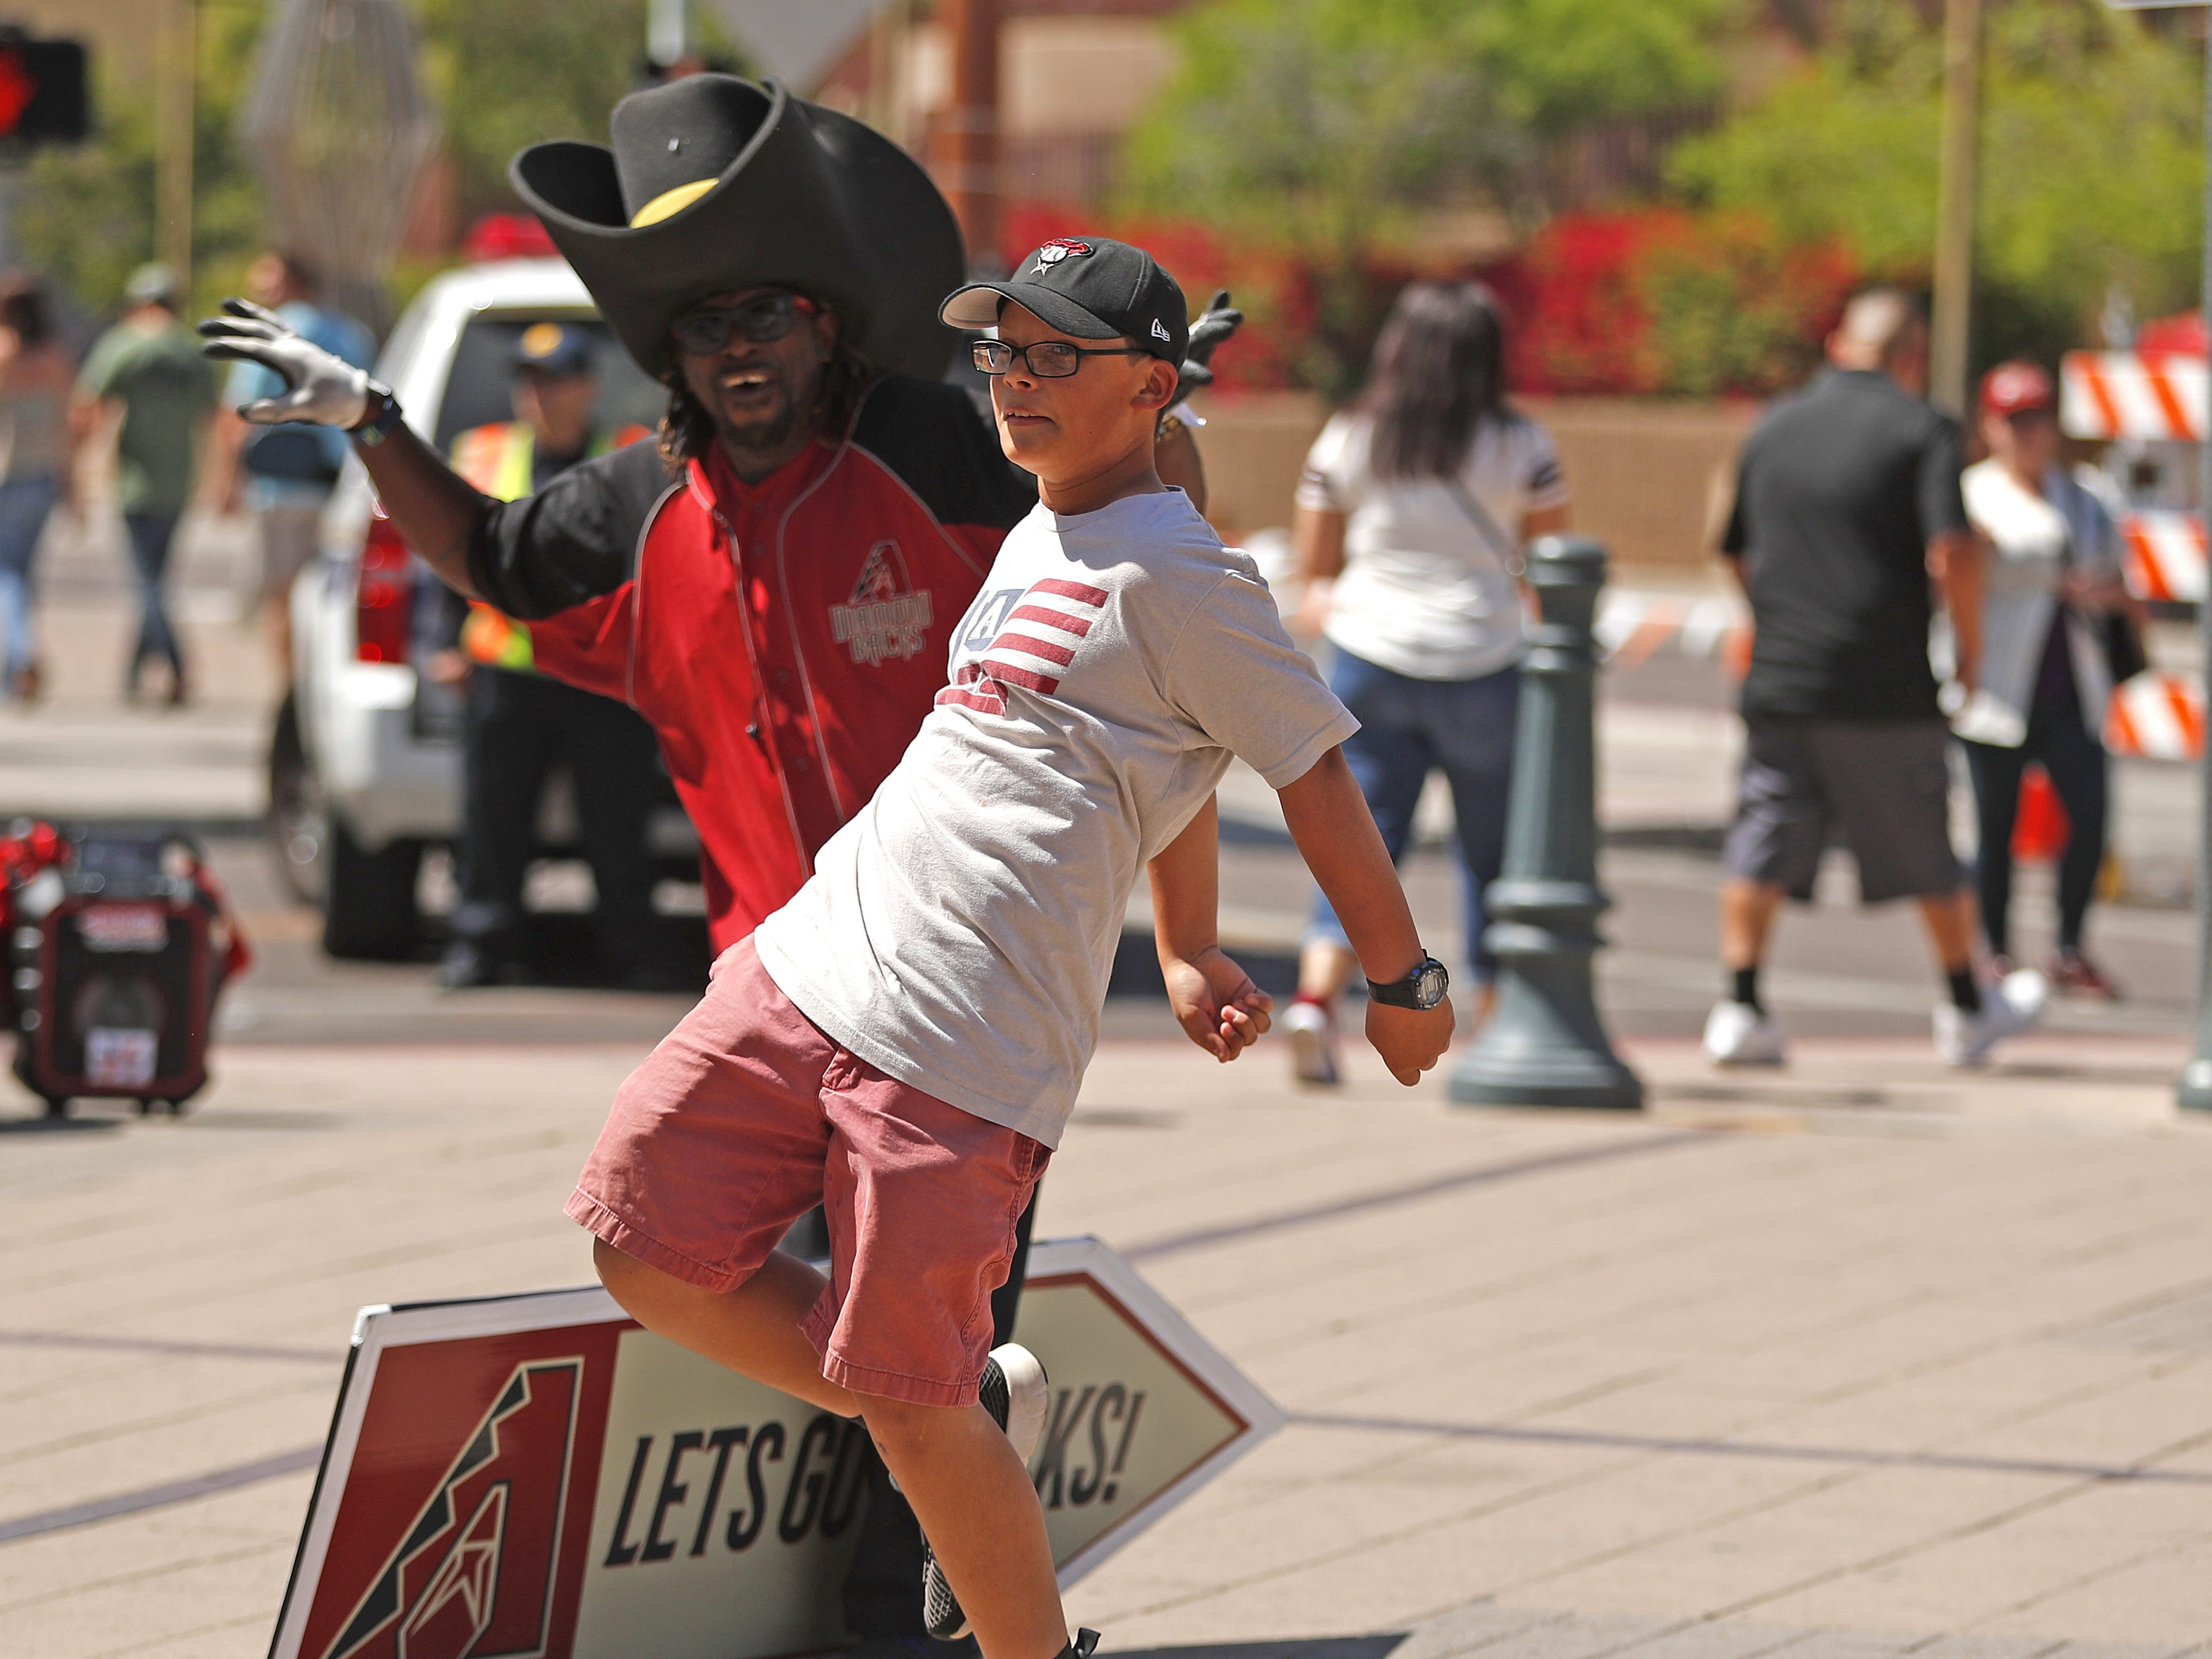 Nathan Cota, 11, dances with Diamondback Bamm outside Chase Field on the Opening Day for the Diamondbacks in Phoenix, Ariz. on April 5, 2019.